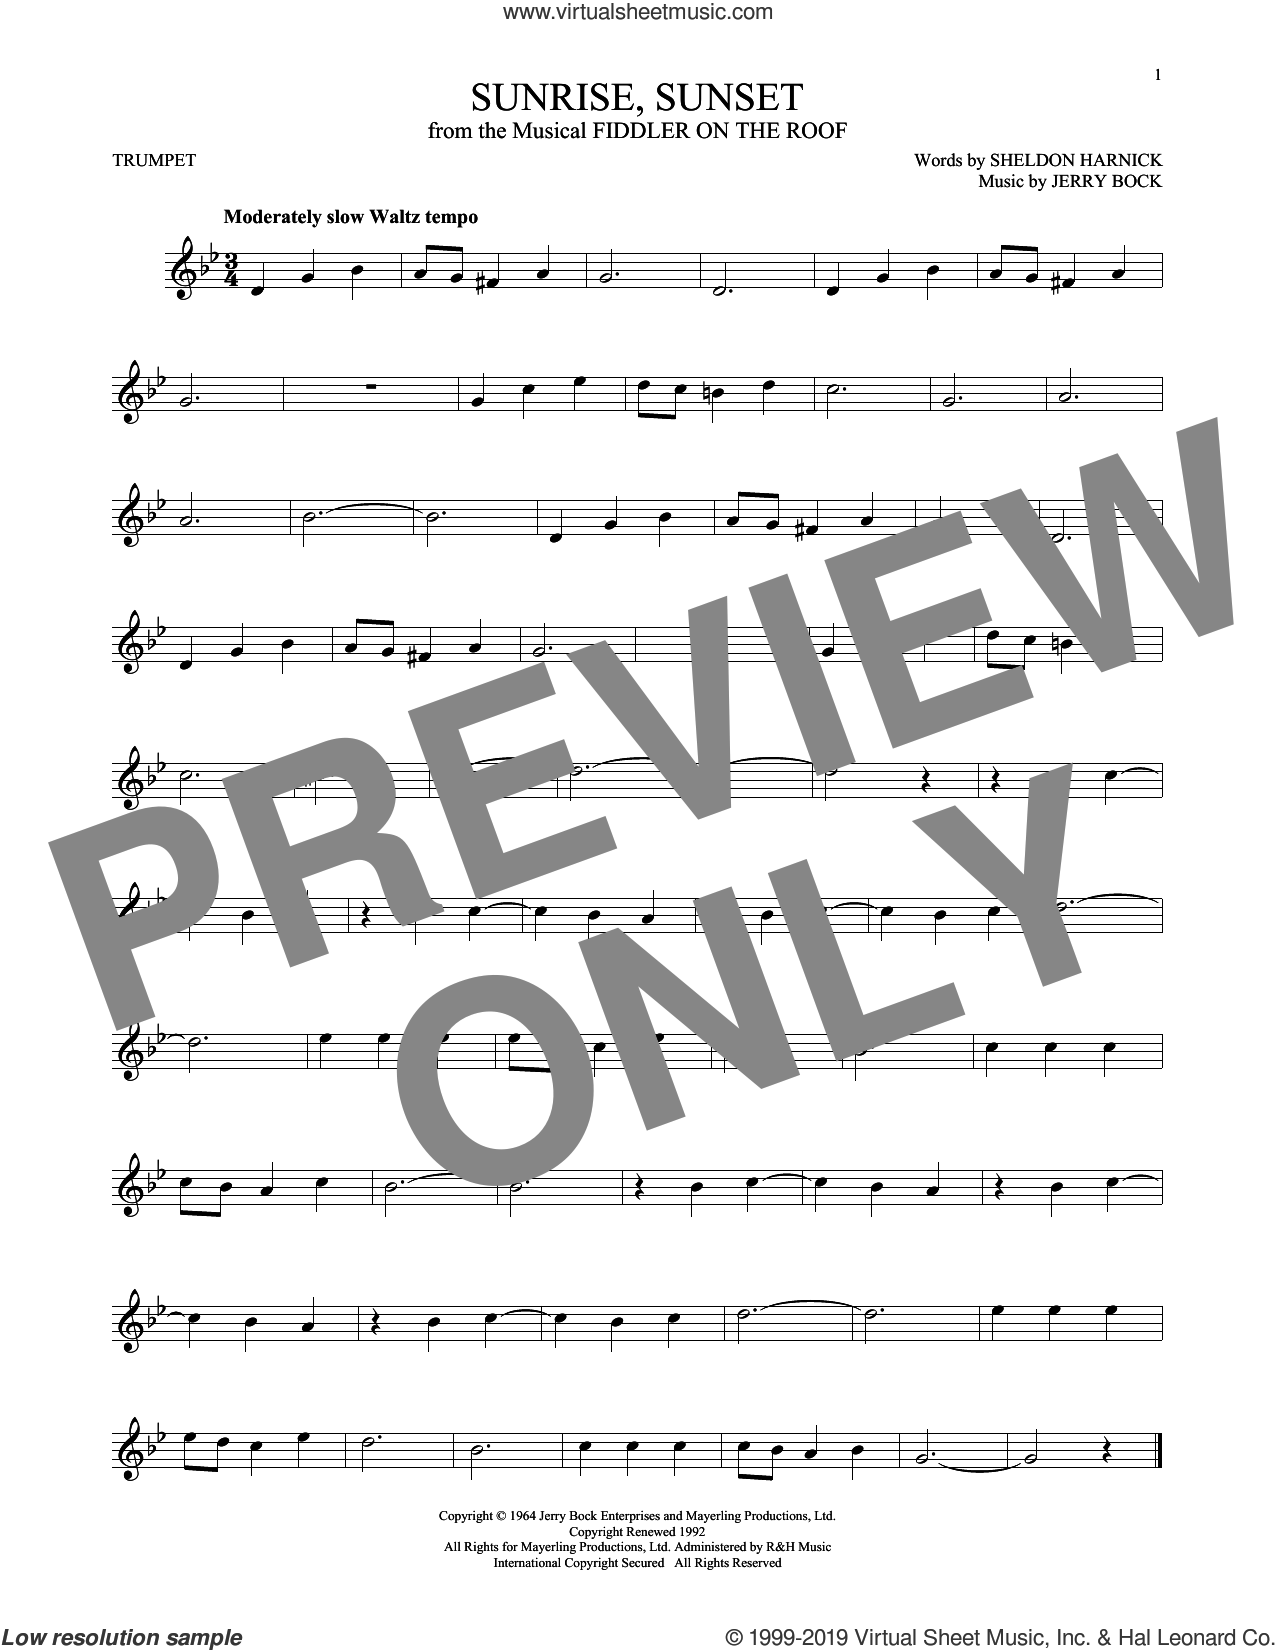 Sunrise, Sunset sheet music for trumpet solo by Jerry Bock and Sheldon Harnick, intermediate skill level